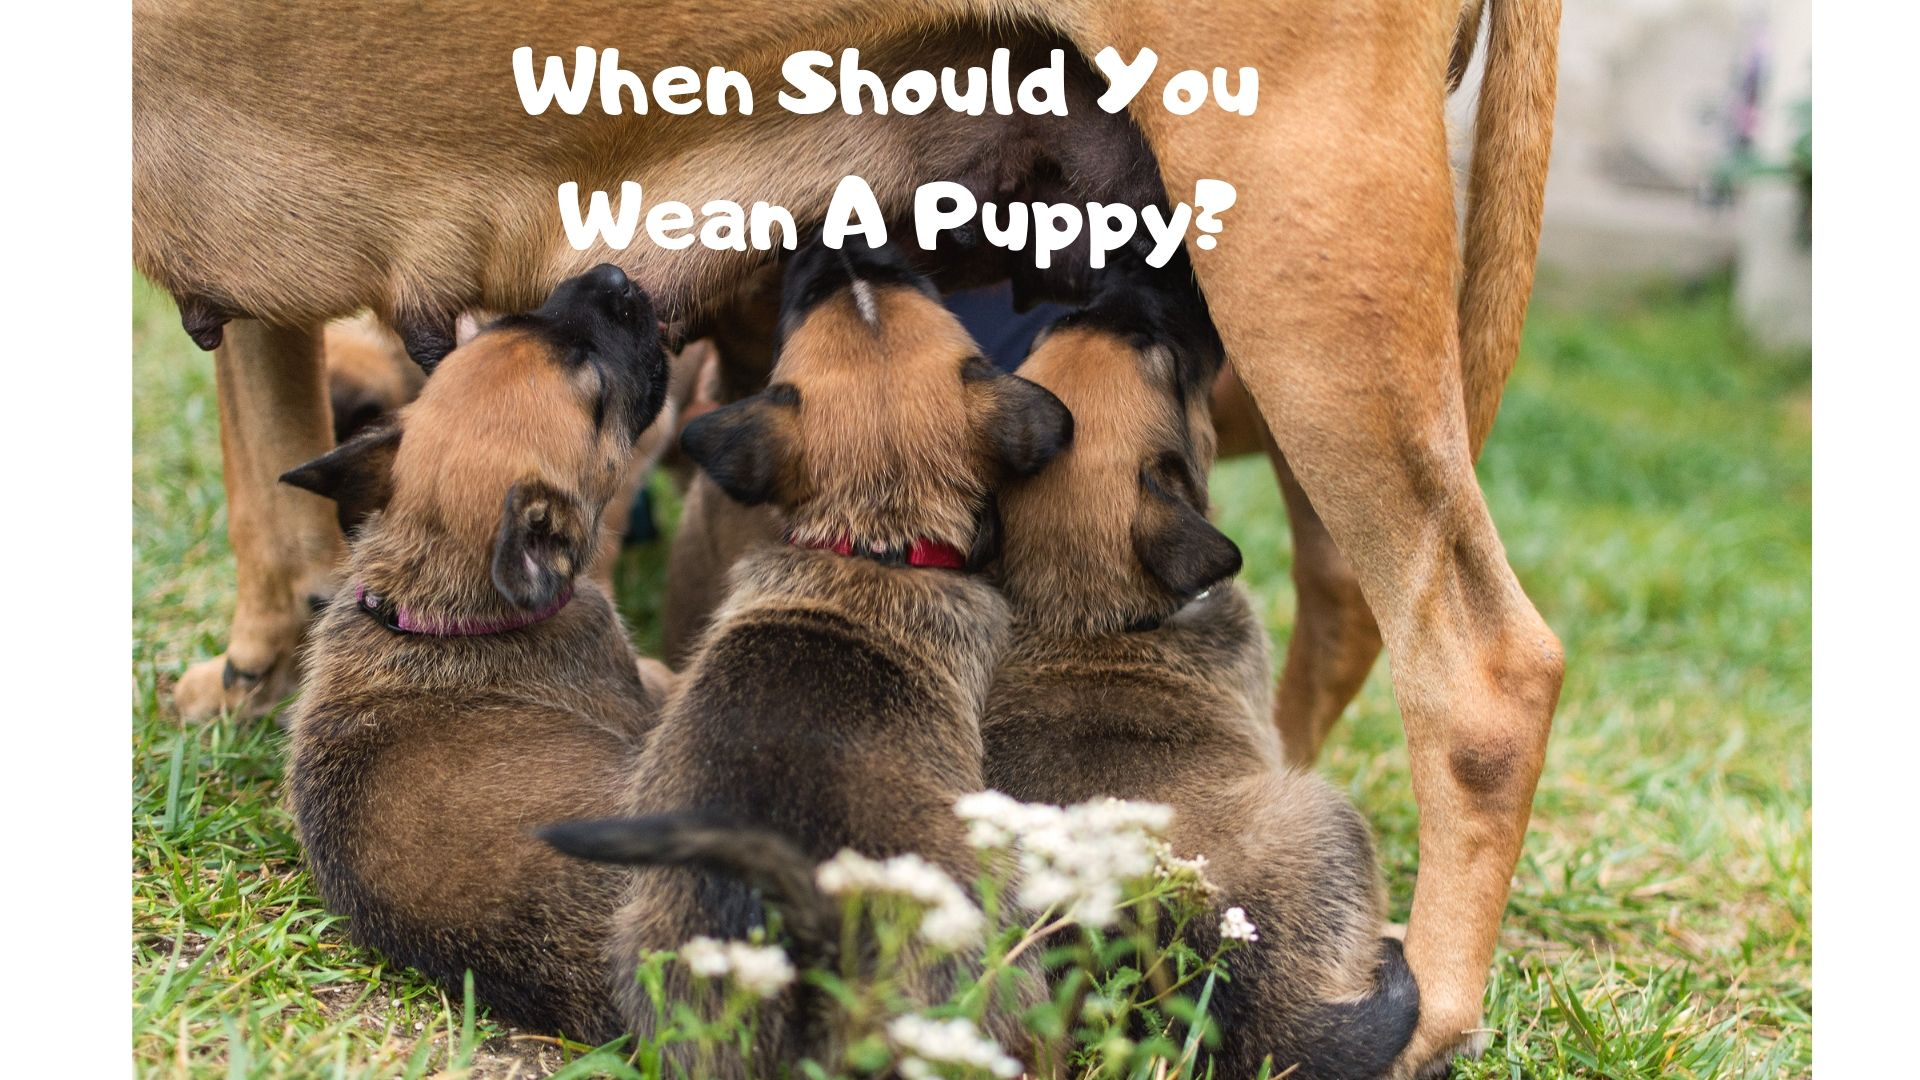 When Should You Wean A Puppy?